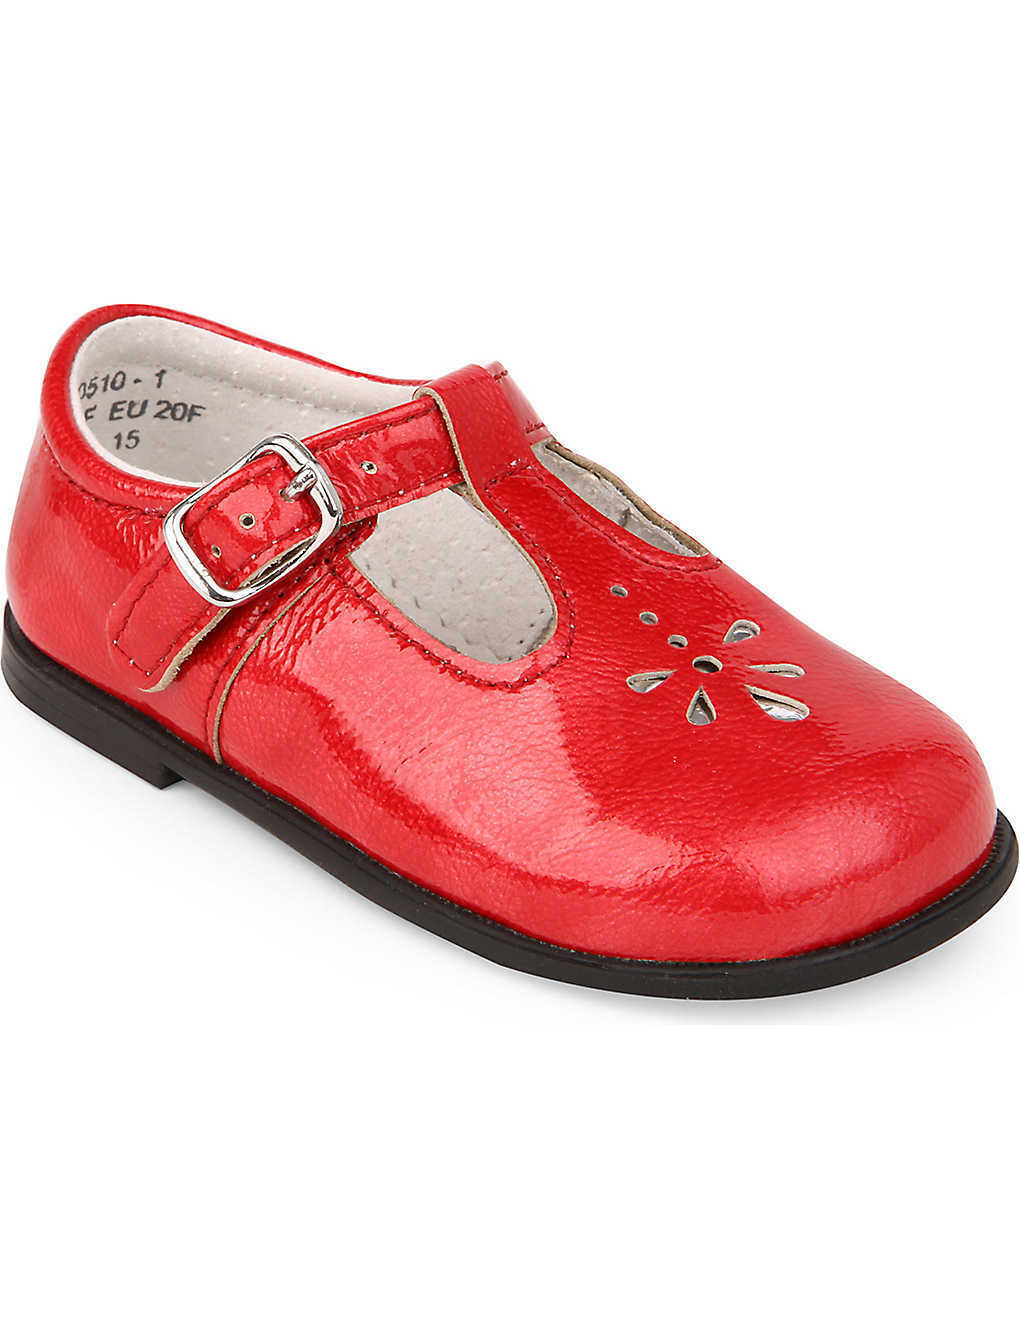 Start-Rite Childrens Toddlers Girls Leather Bubble 2 T-Bar Shoes Red Patent